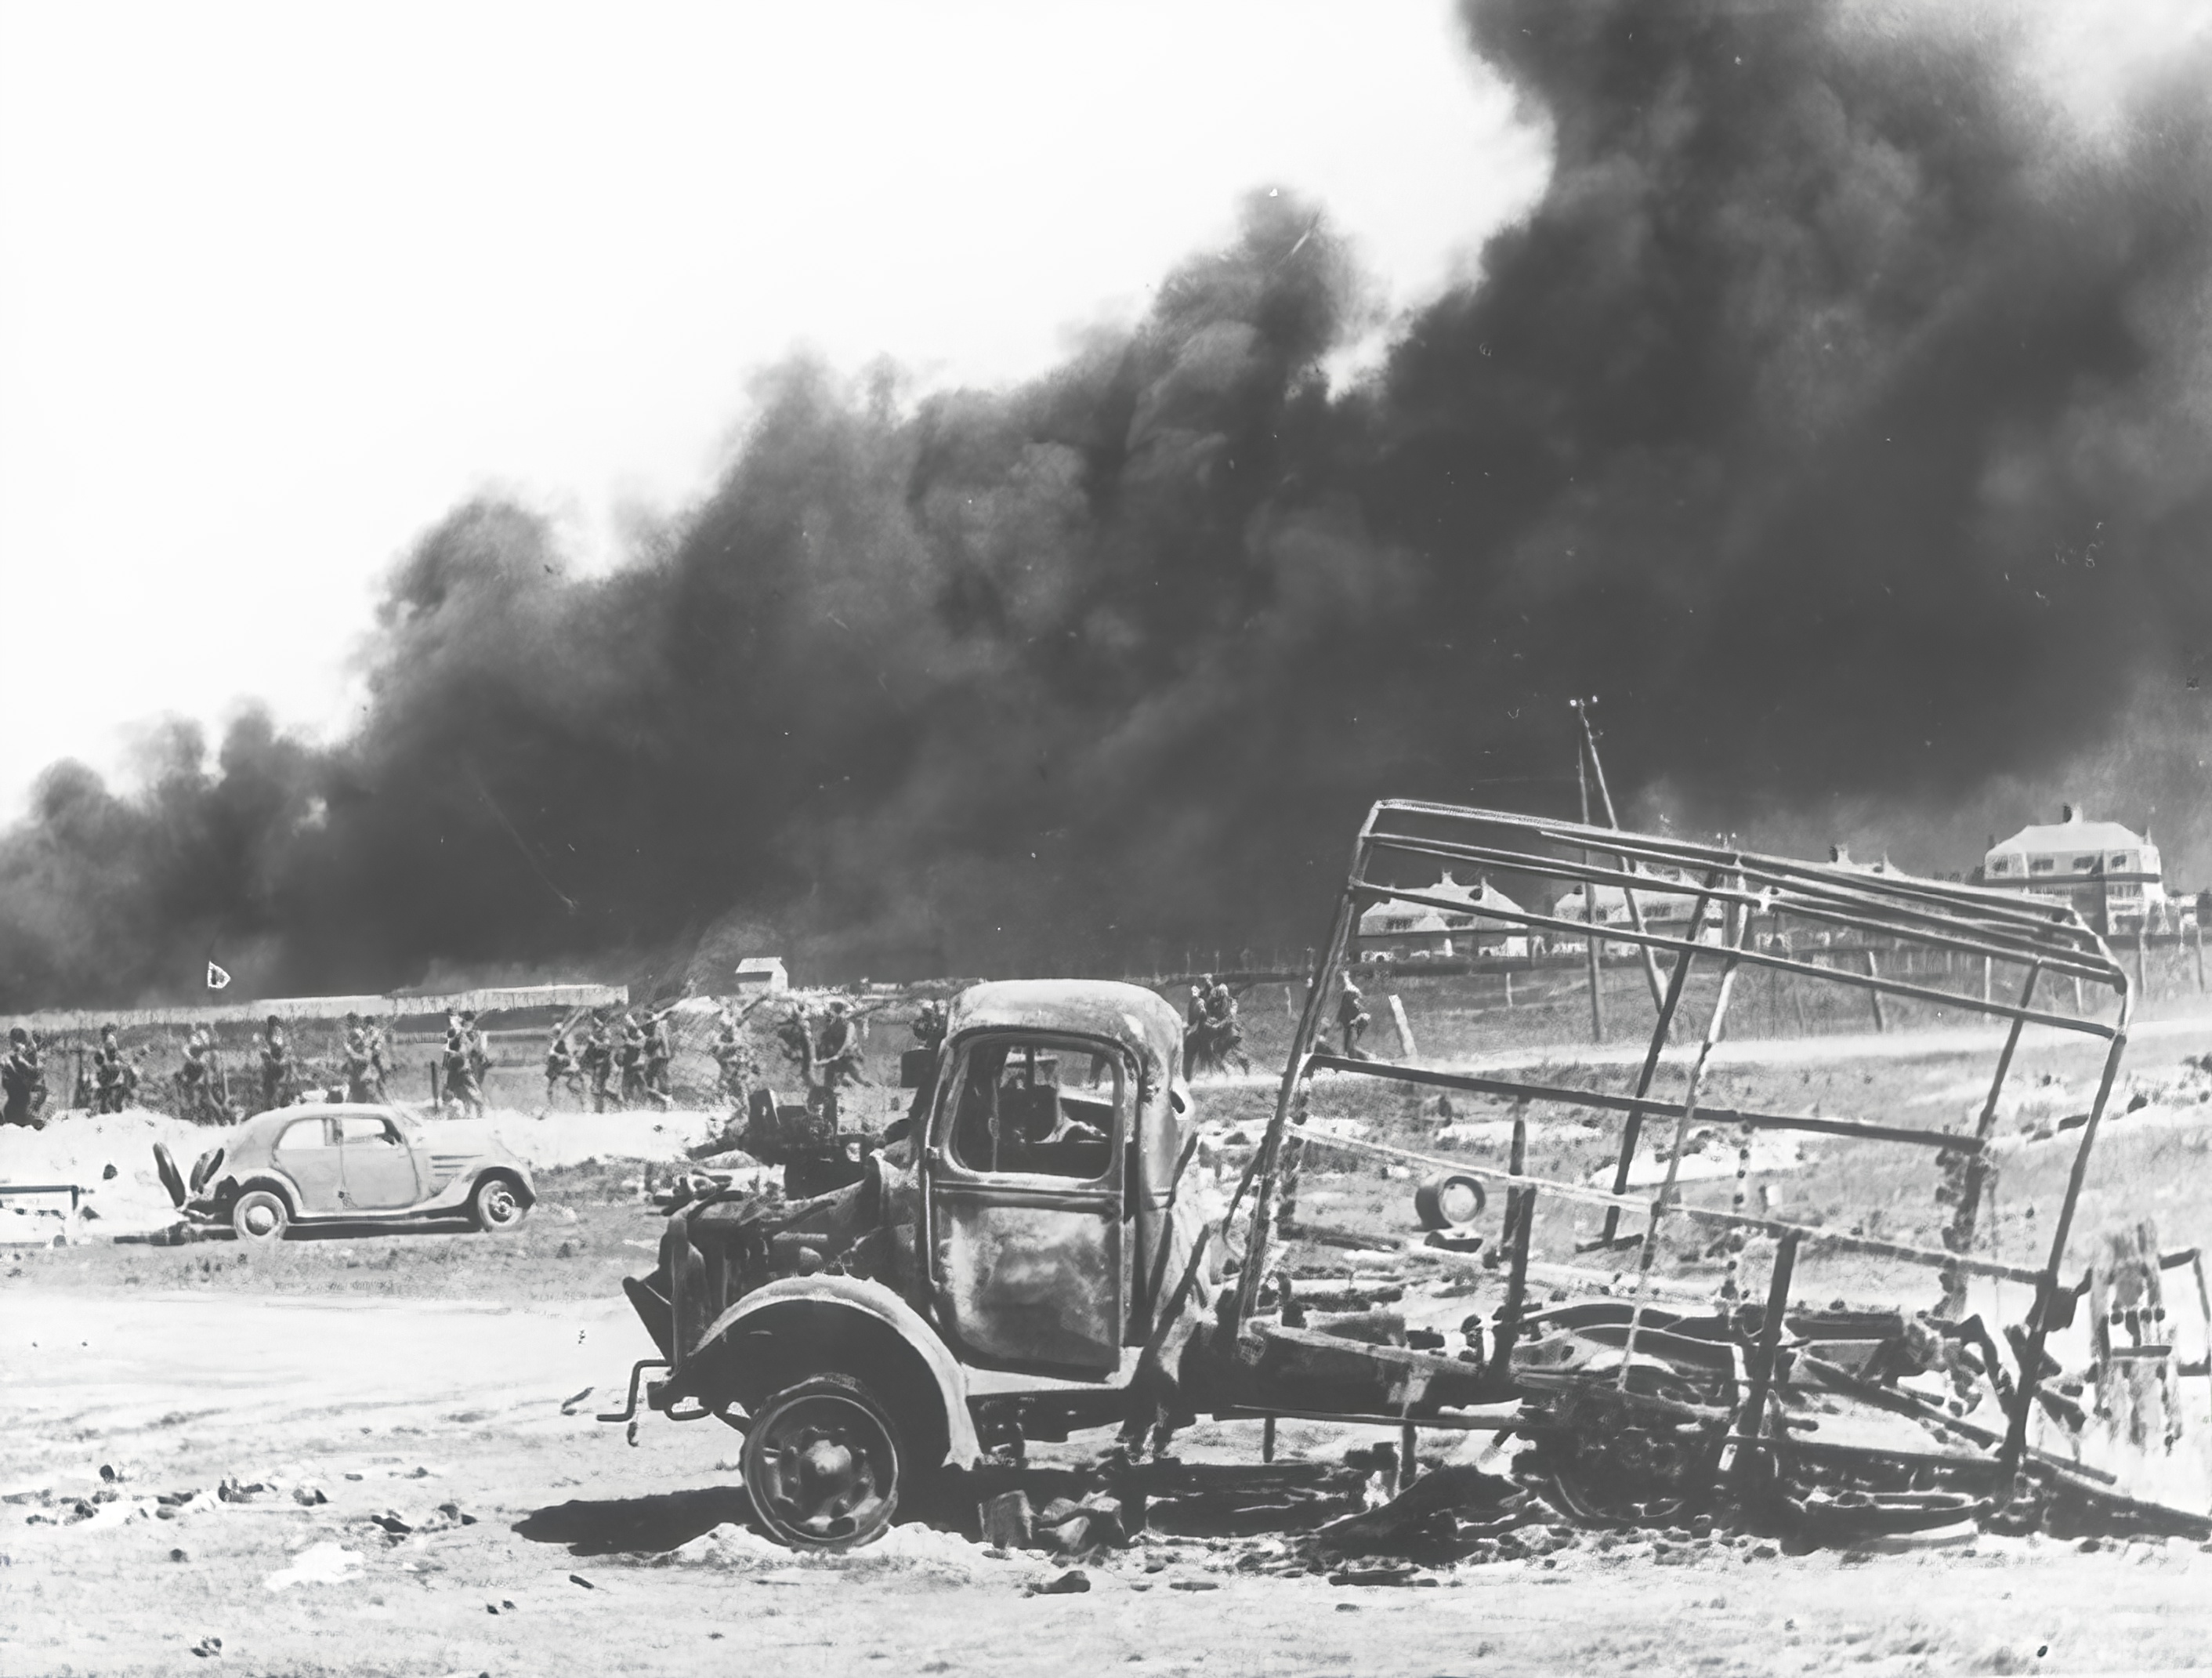 Dunkirk littered with destroyed vehicles after the BEF withdrawal from France 12th Jun 1940 NIOD